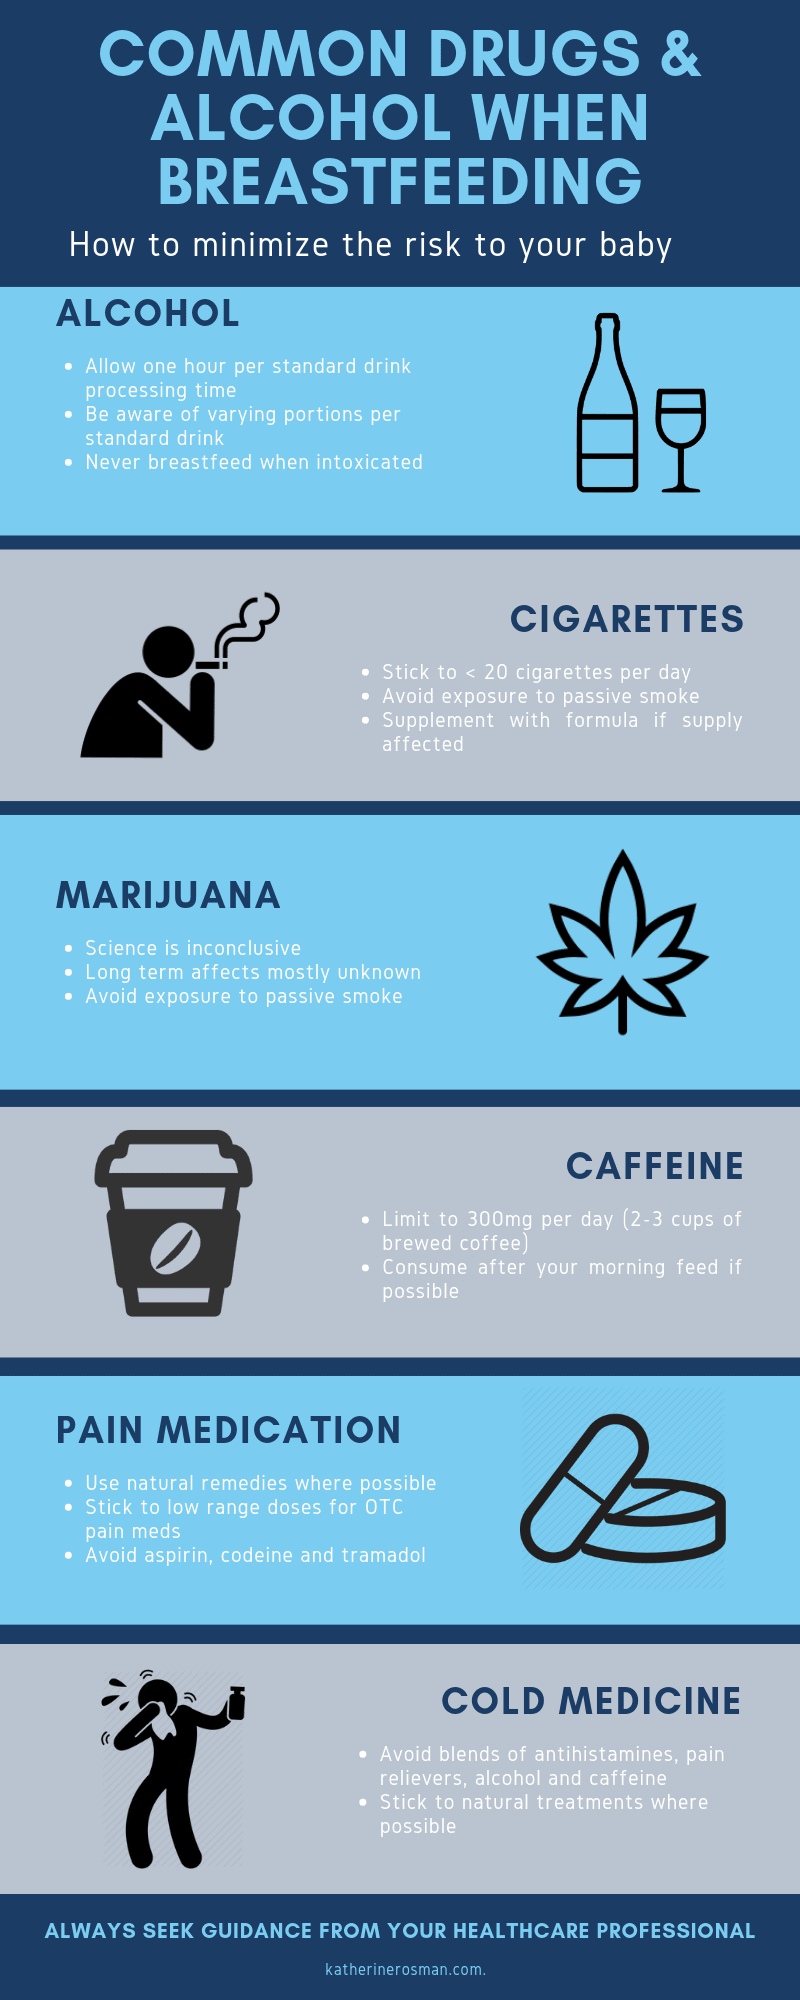 alcohol smoking caffeine and drugs while breastfeeding infographic